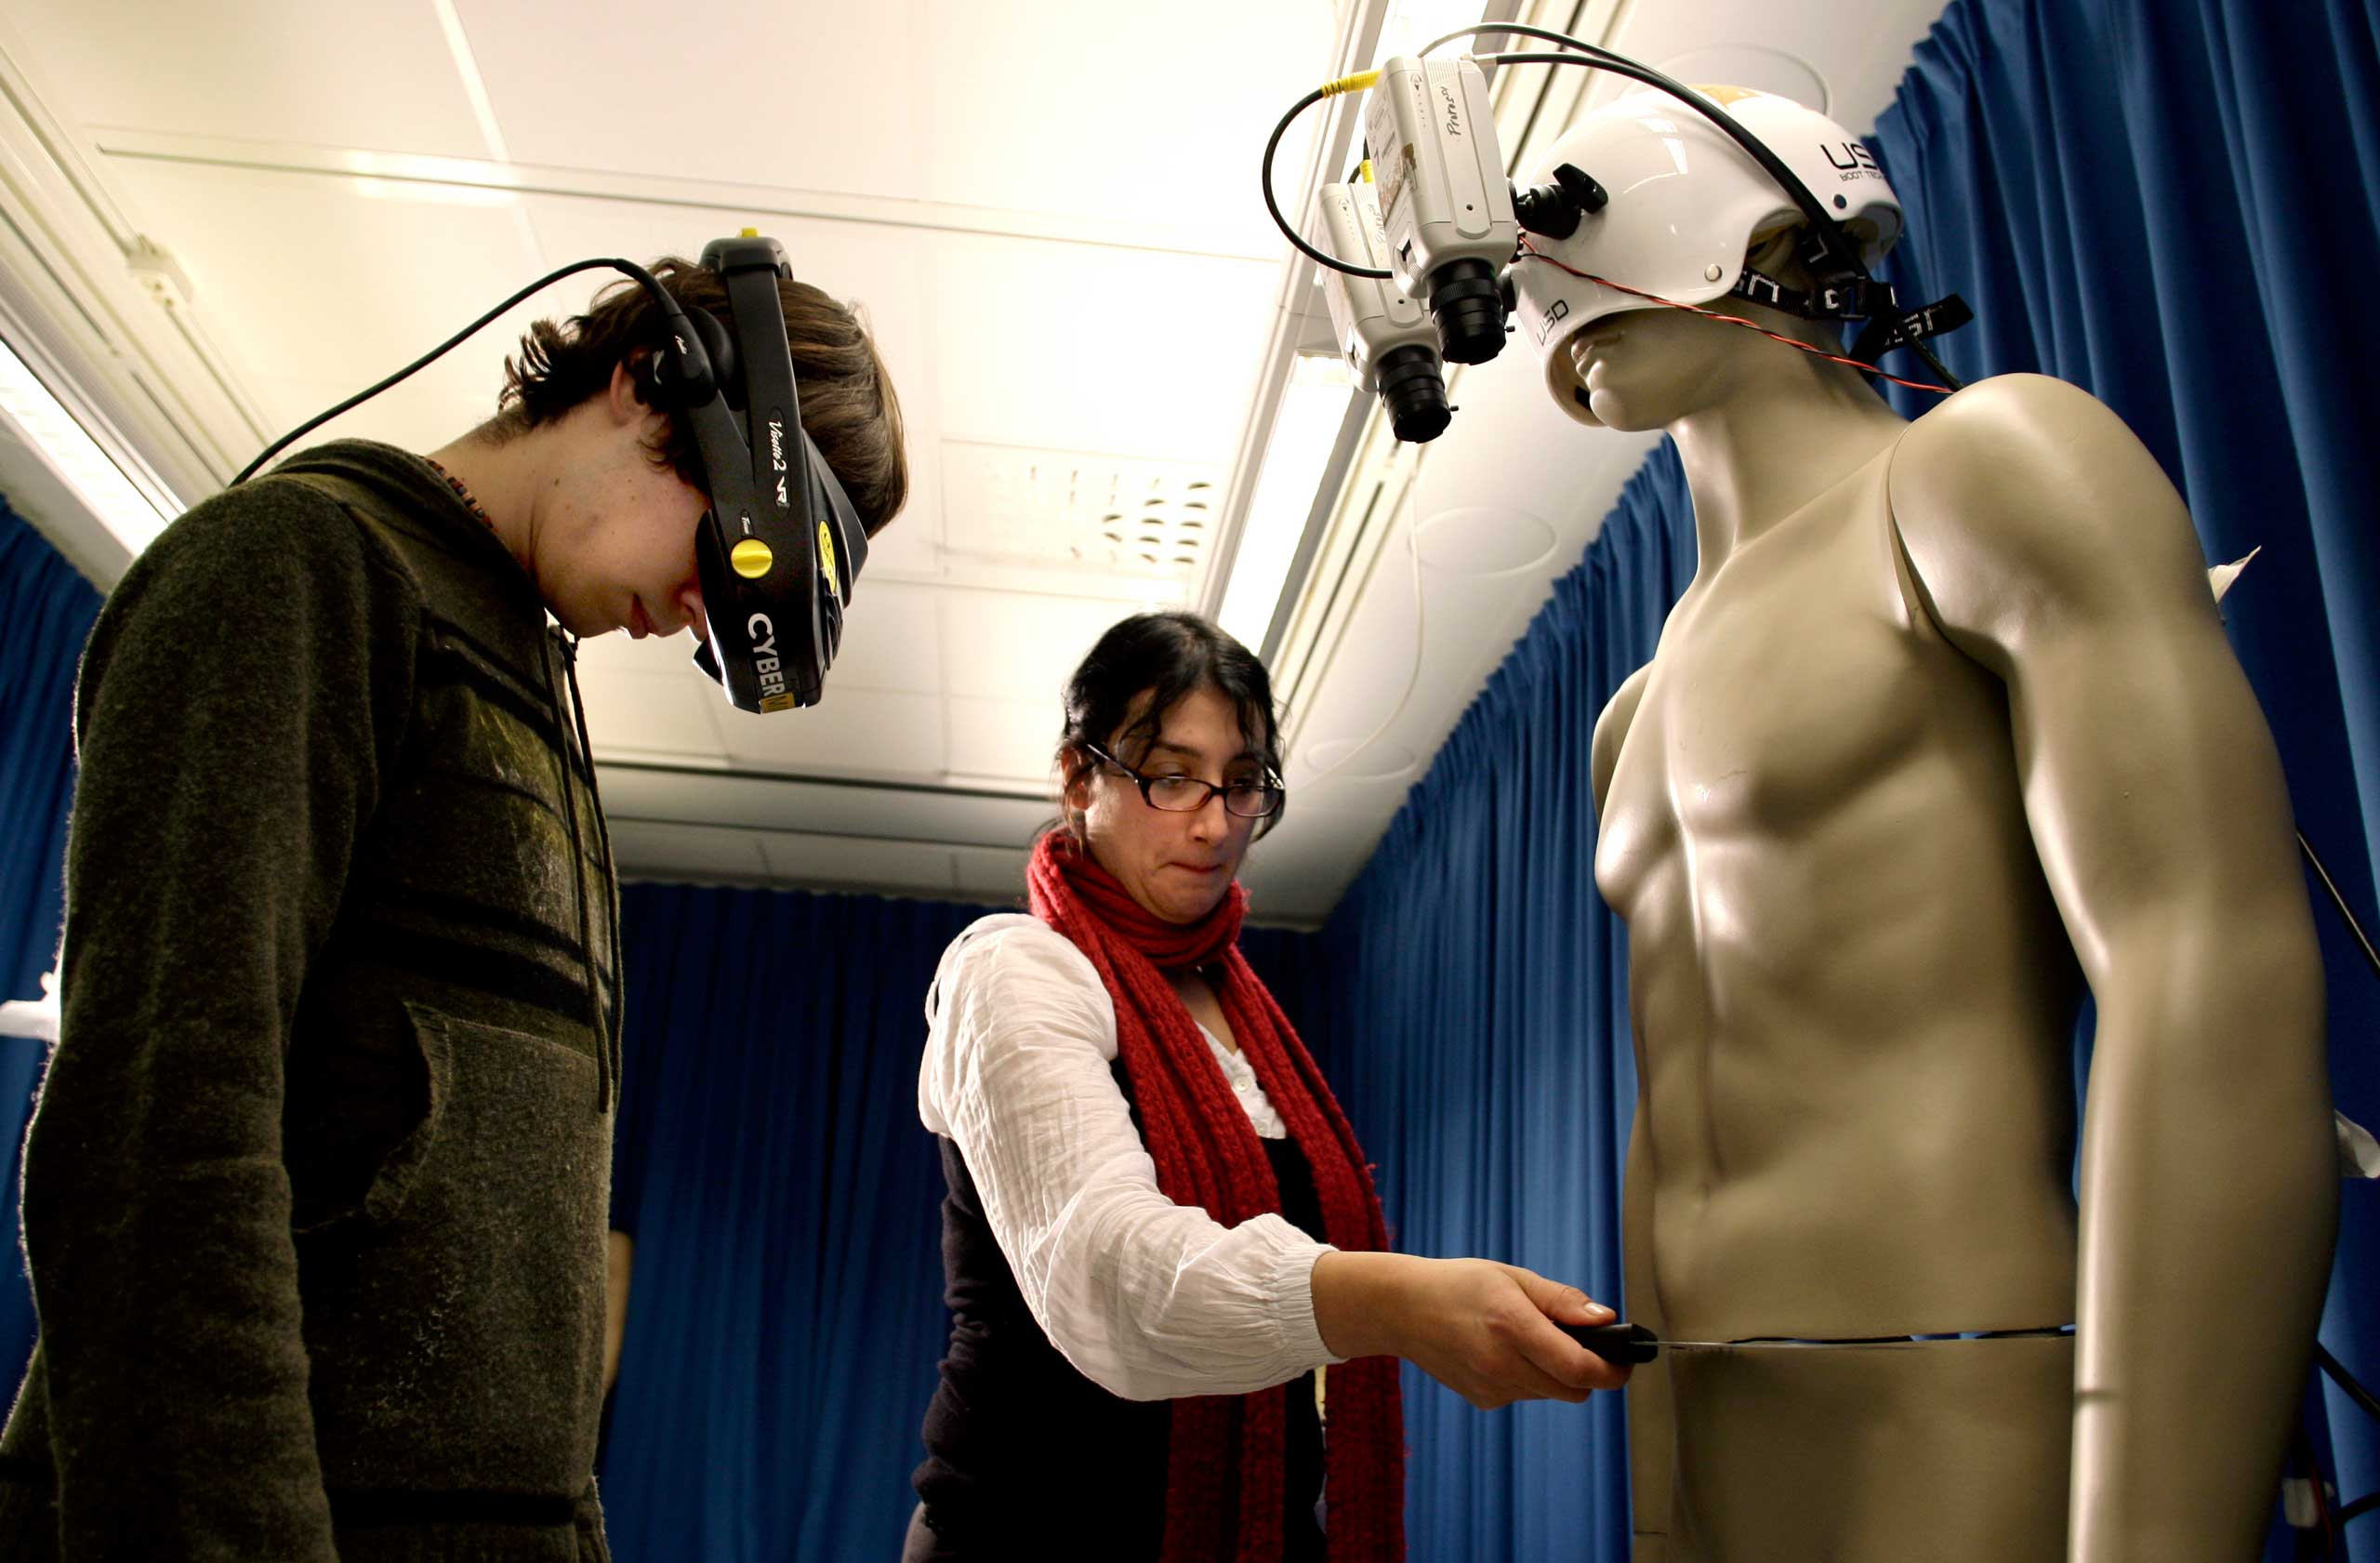 2008                                                              Valeria Petkova, right, and student Andrew Ketterer, left, of the Karolinska Institute in Stockholm, tested the 'body-swap' illusion, a method whereby people can experience the illusion that either a mannequin or another person's body is their own body.